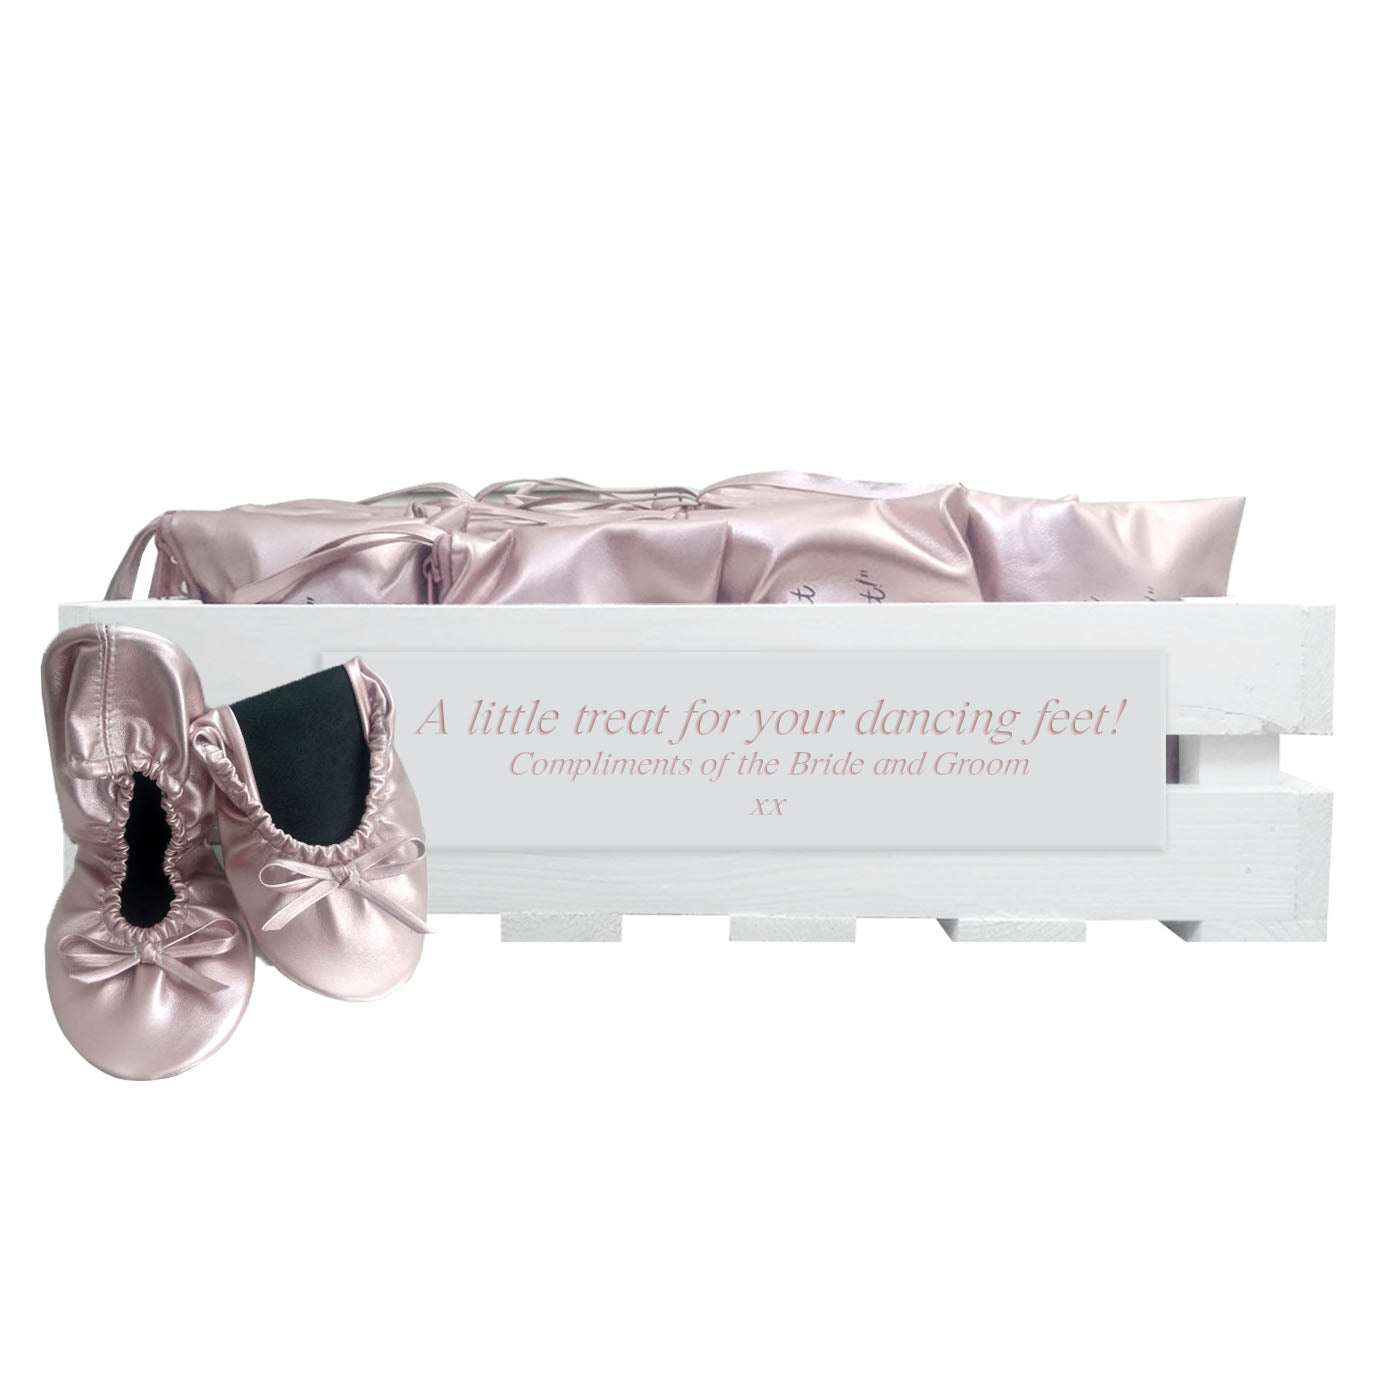 30 pairs of rose gold fold-up ballerinas in a personalized crate